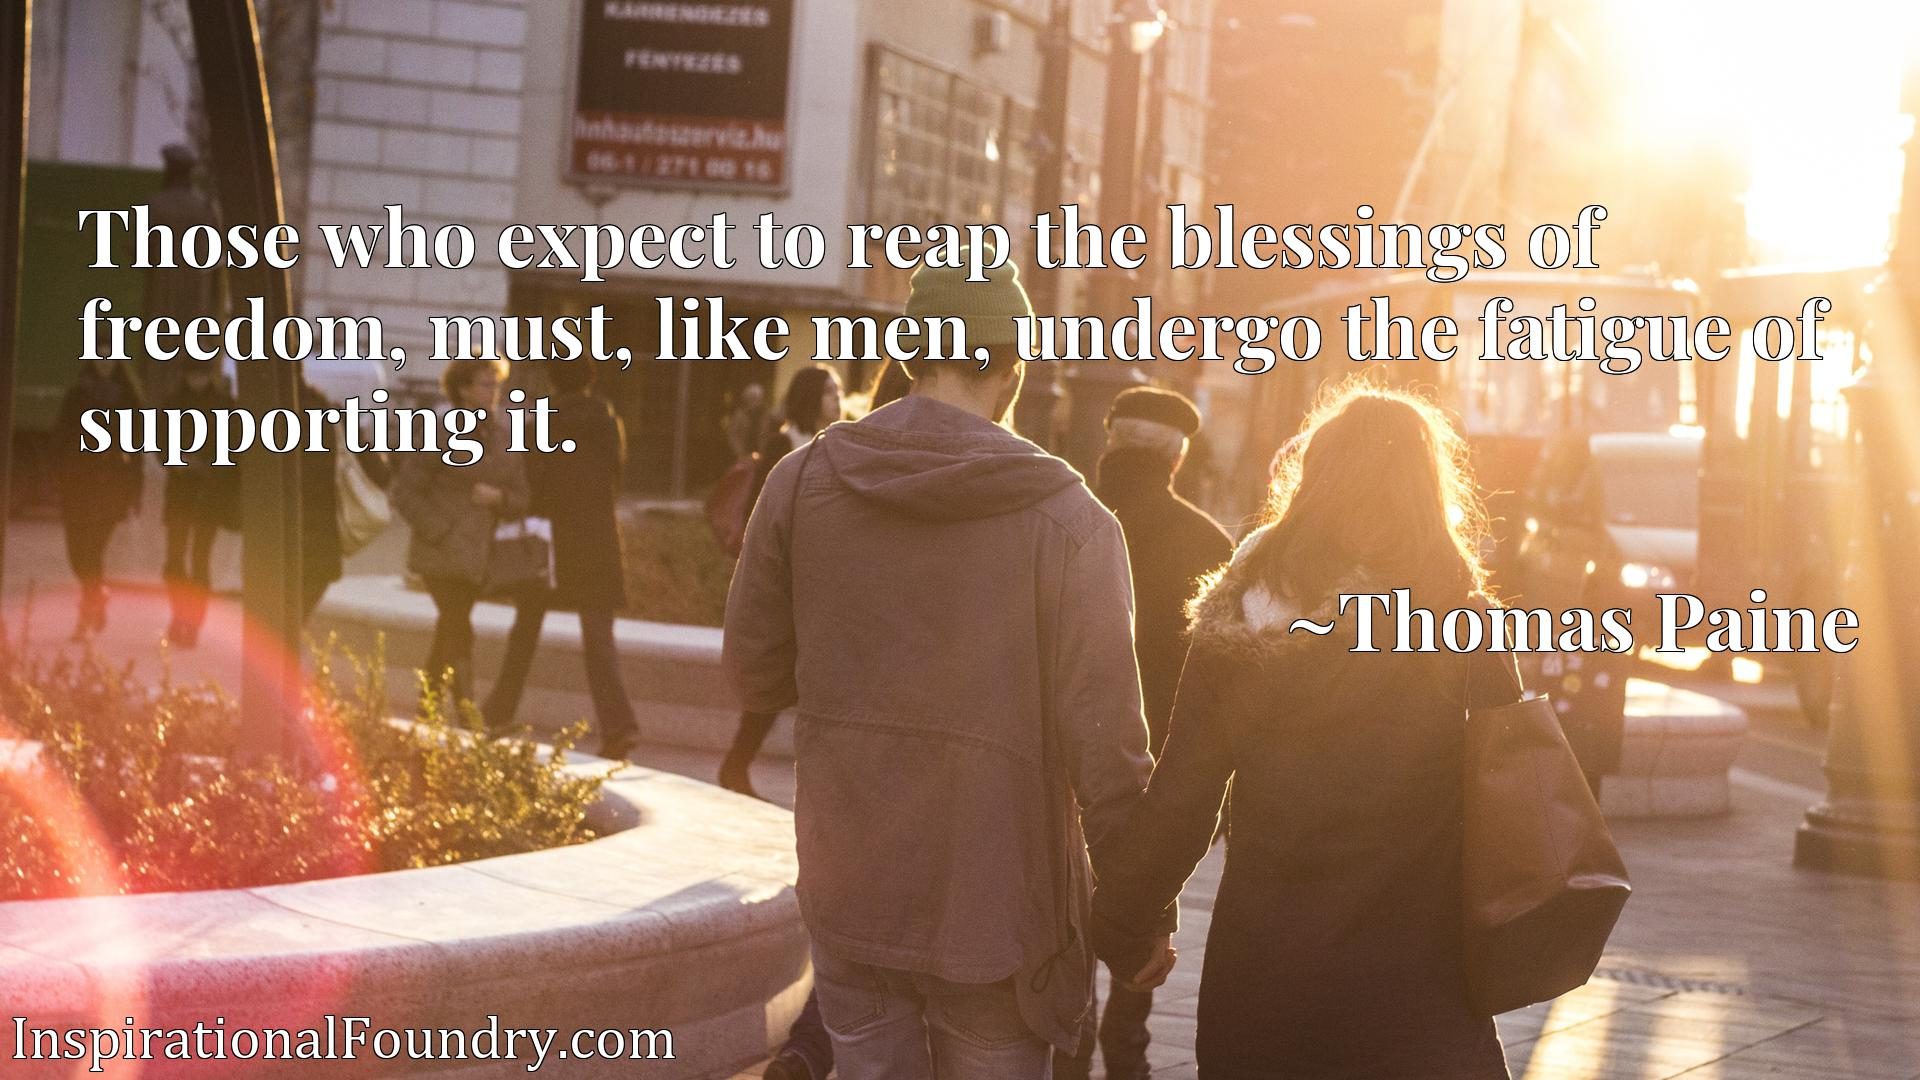 Those who expect to reap the blessings of freedom, must, like men, undergo the fatigue of supporting it.